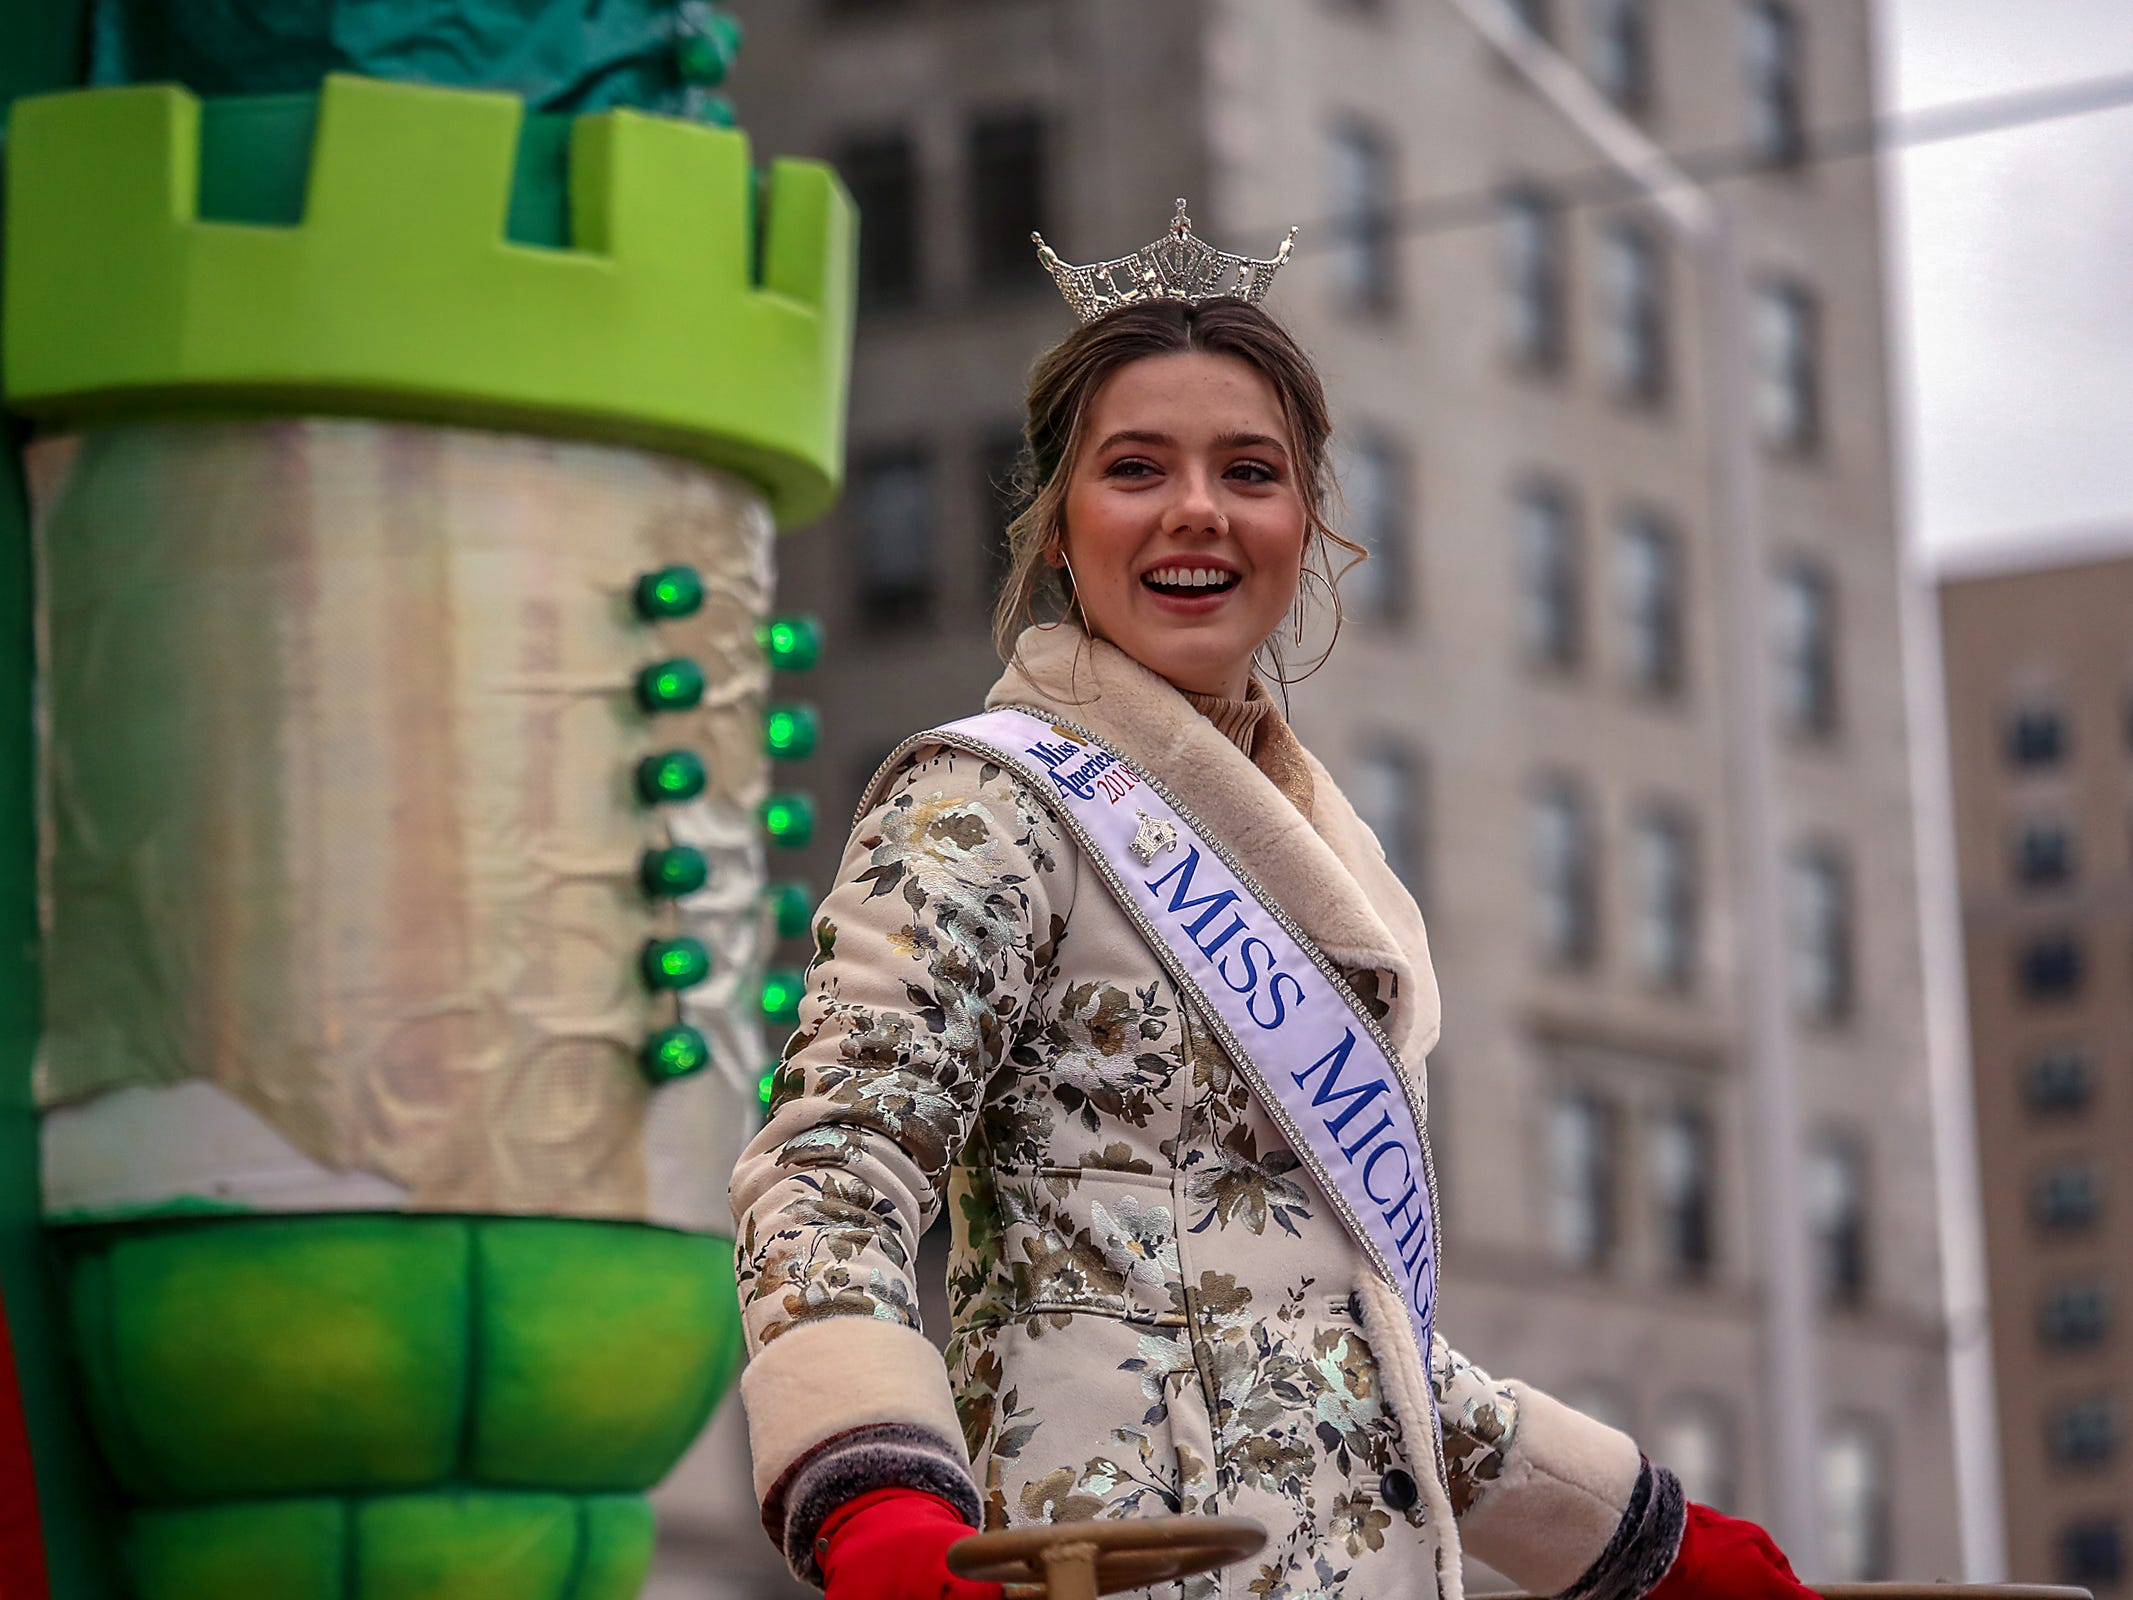 Miss Michigan Emily Sioma rides a float, during America's Thanksgiving Parade in Detroit on Thursday, Nov. 22, 2018.